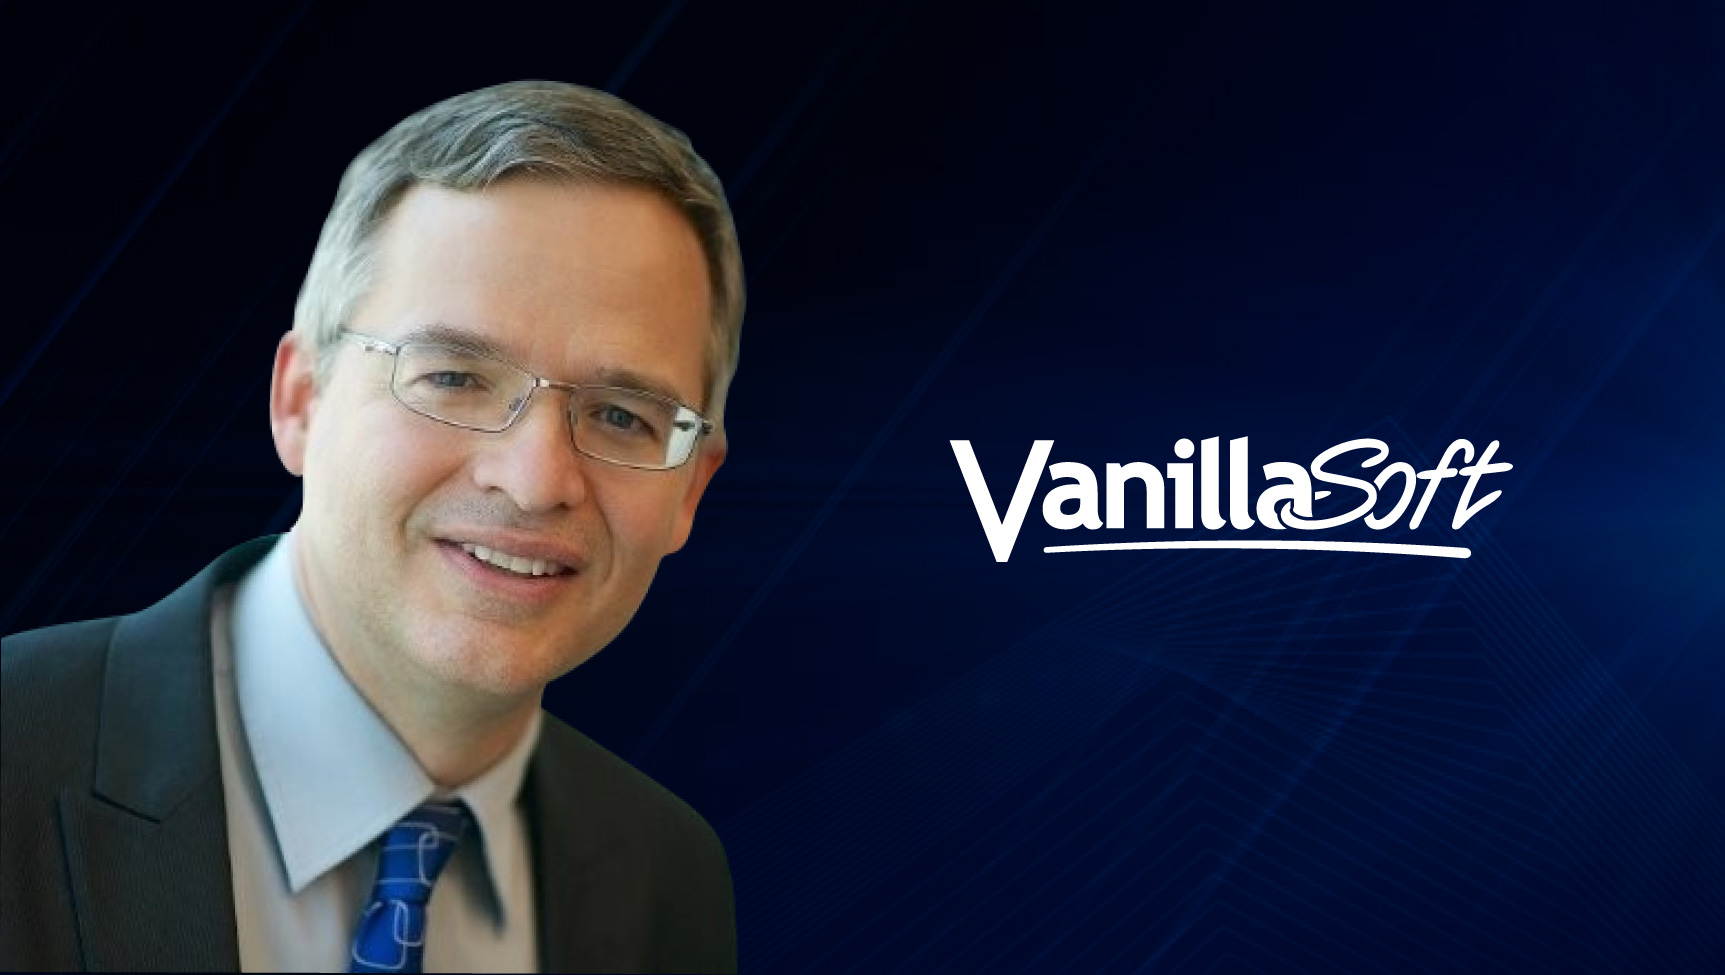 SalesTech Interview with David Hood, President & CEO at VanillaSoft